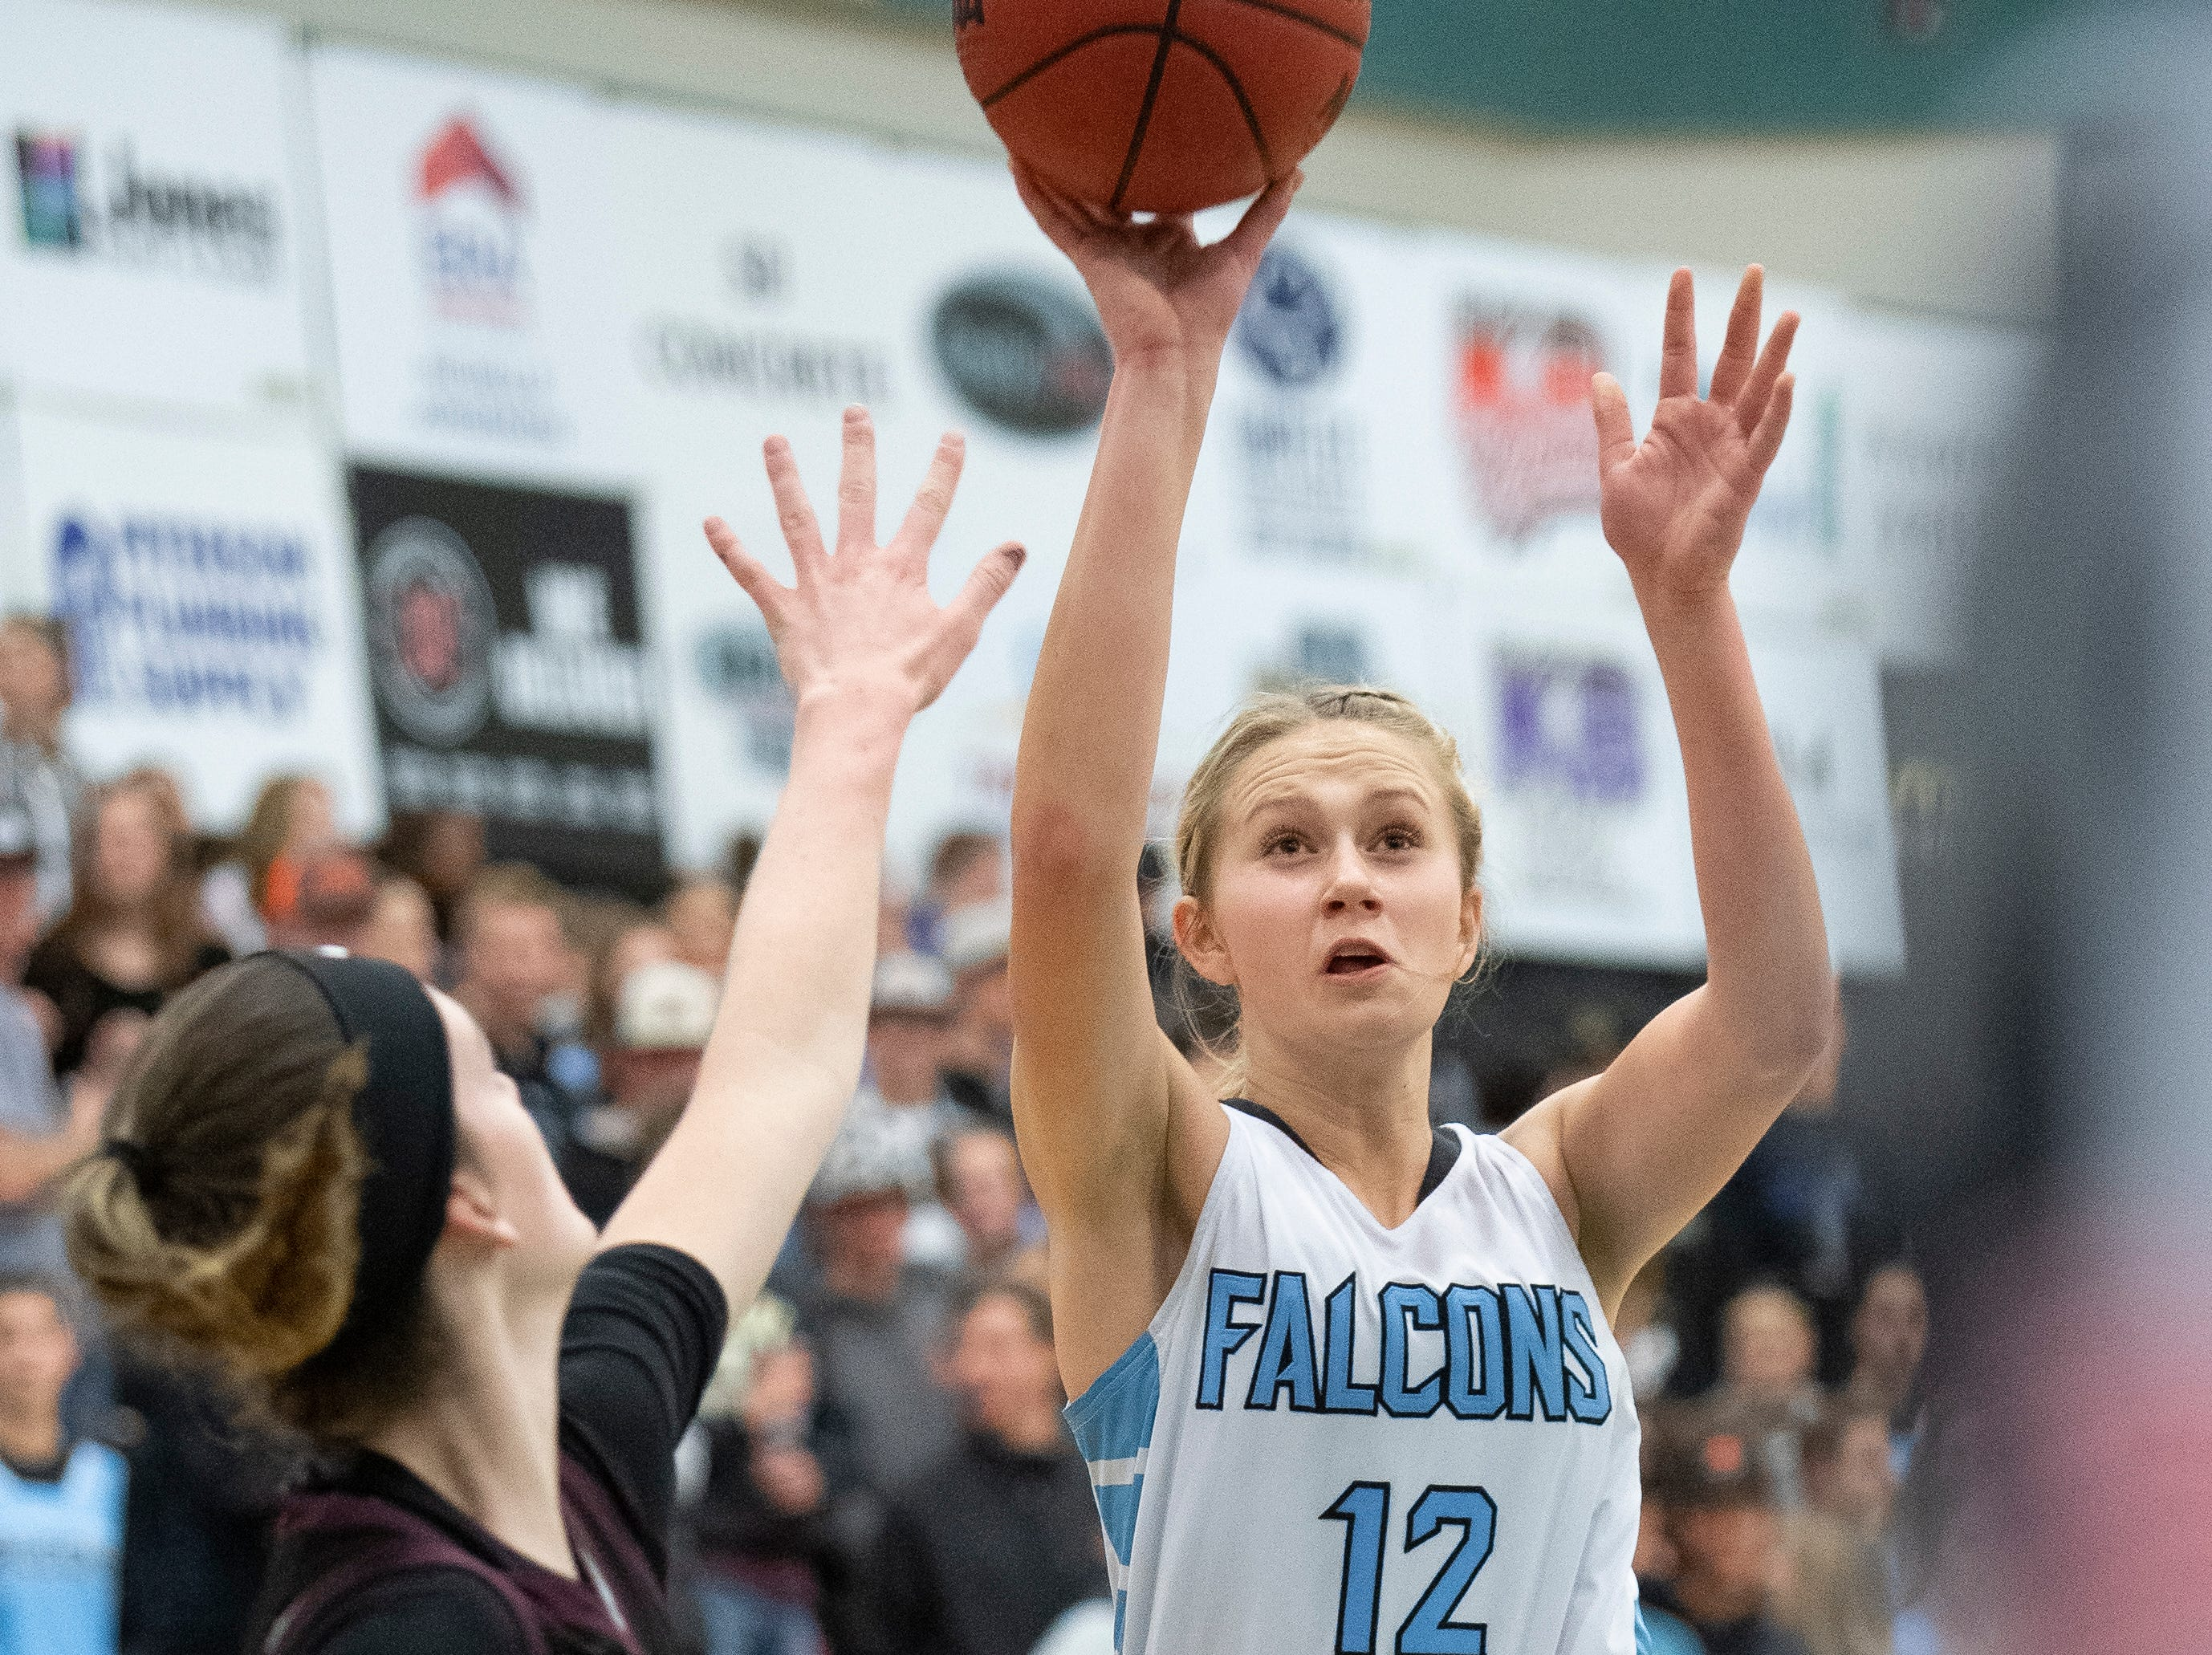 Canyon View High School freshman Harlee Nicoll (12) scores a basket against Pine View at CVHS Tuesday, January 15, 2019. The CVHS Falcons won, 48-46.